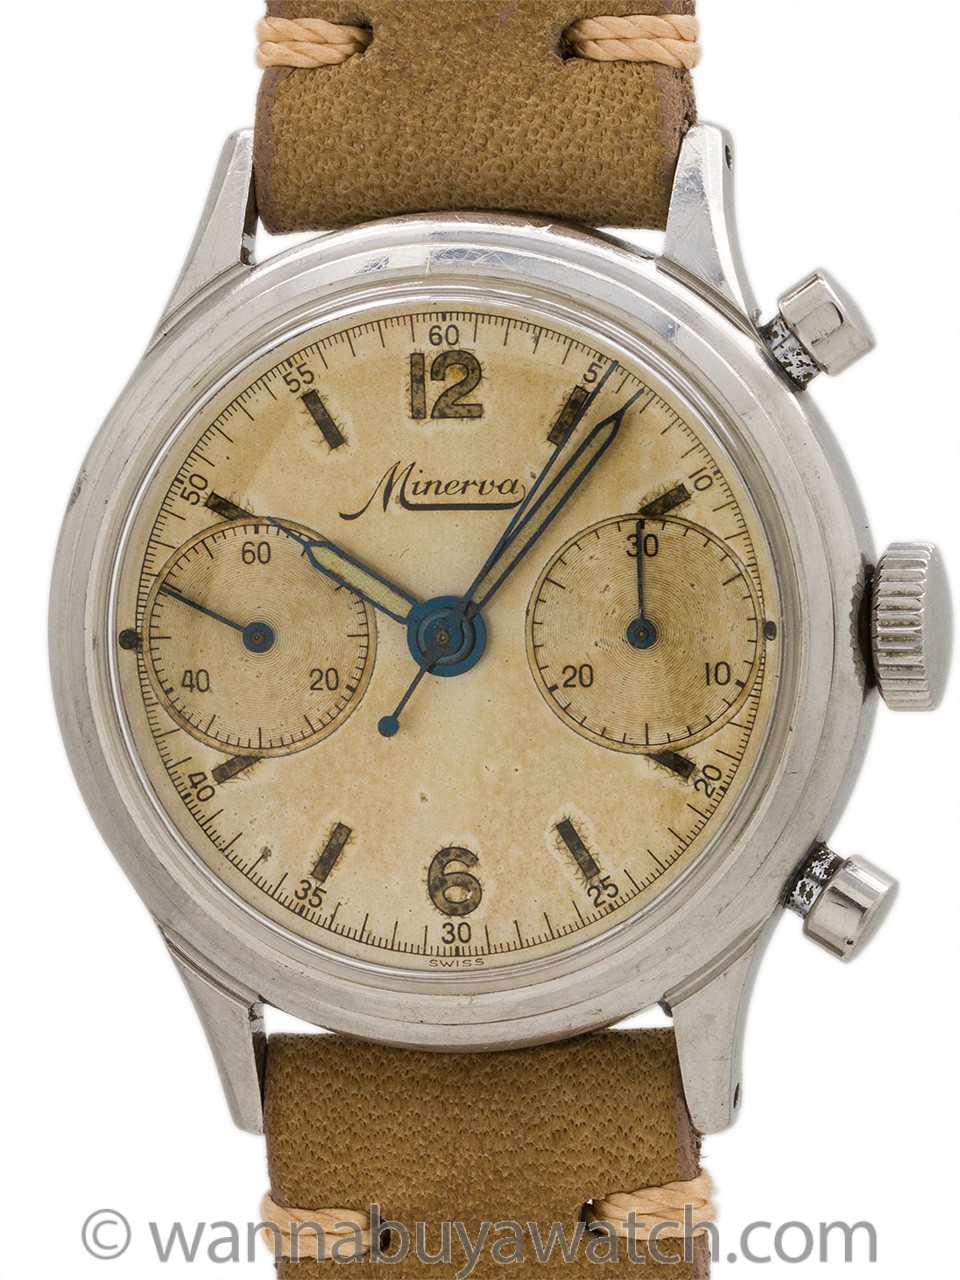 Minerva Chronograph Stainless Steel circa 1940s